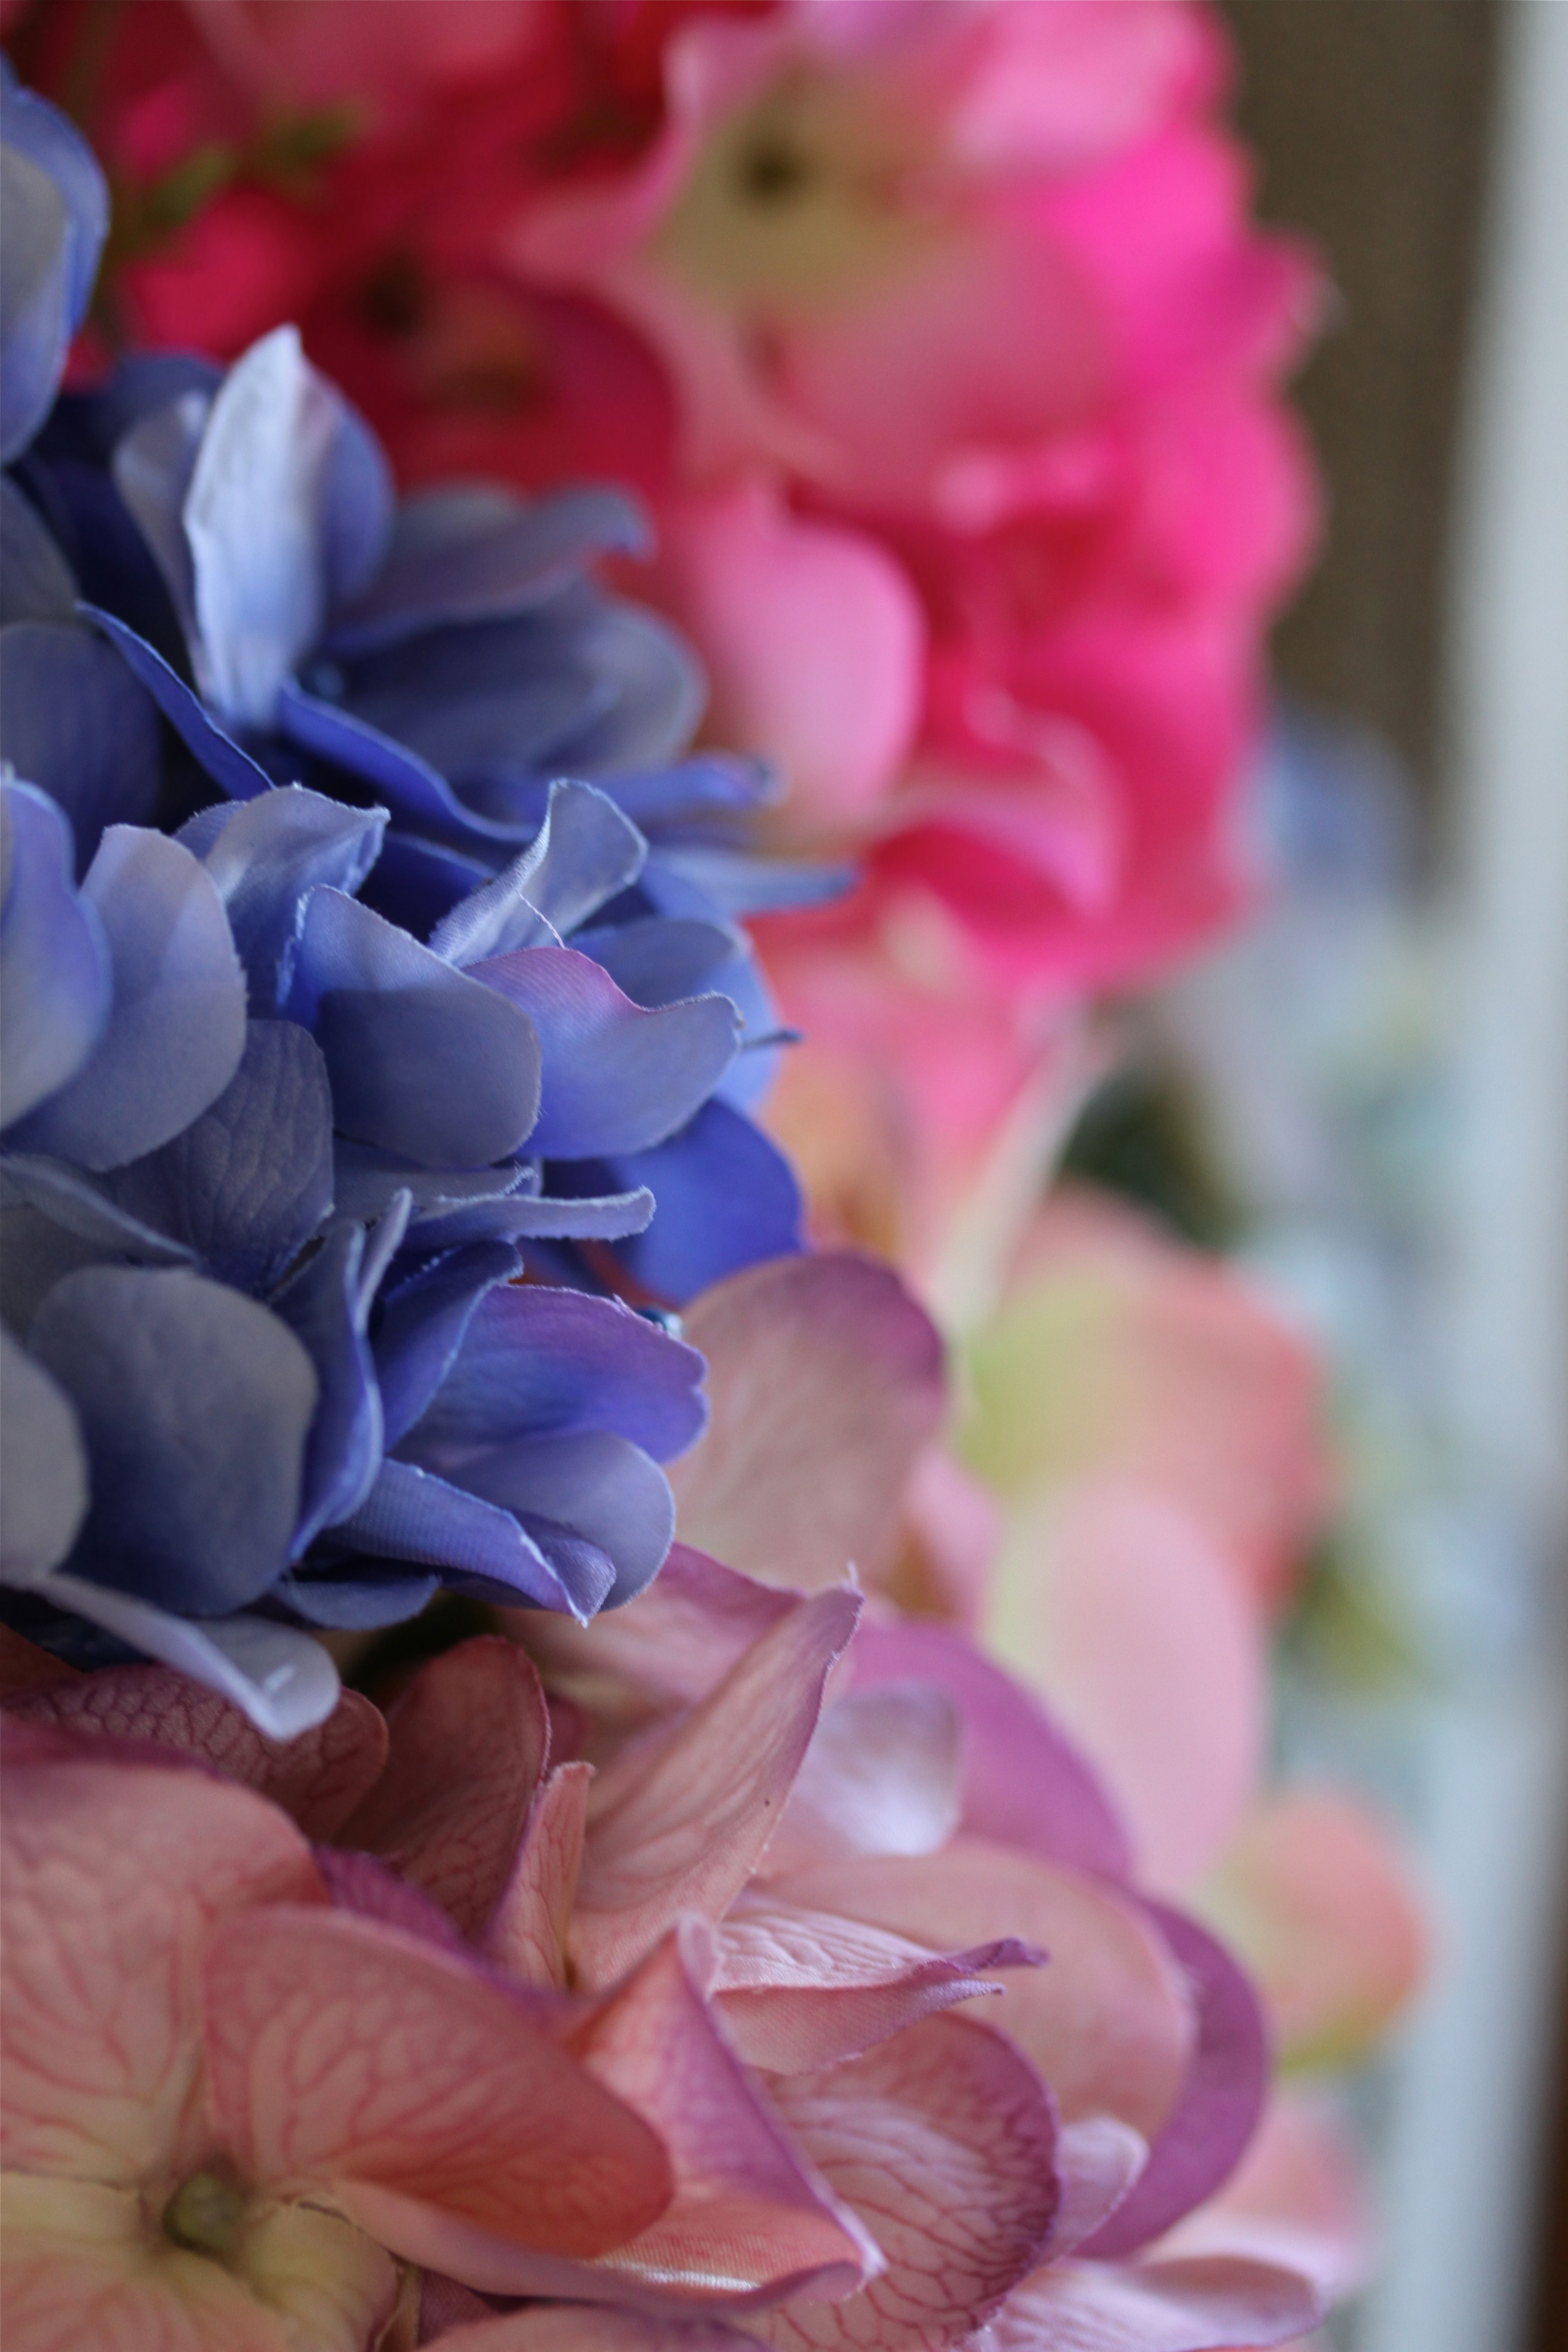 Fake or not, these ruffled edges, saturated and variegated colors scream summertime to me.